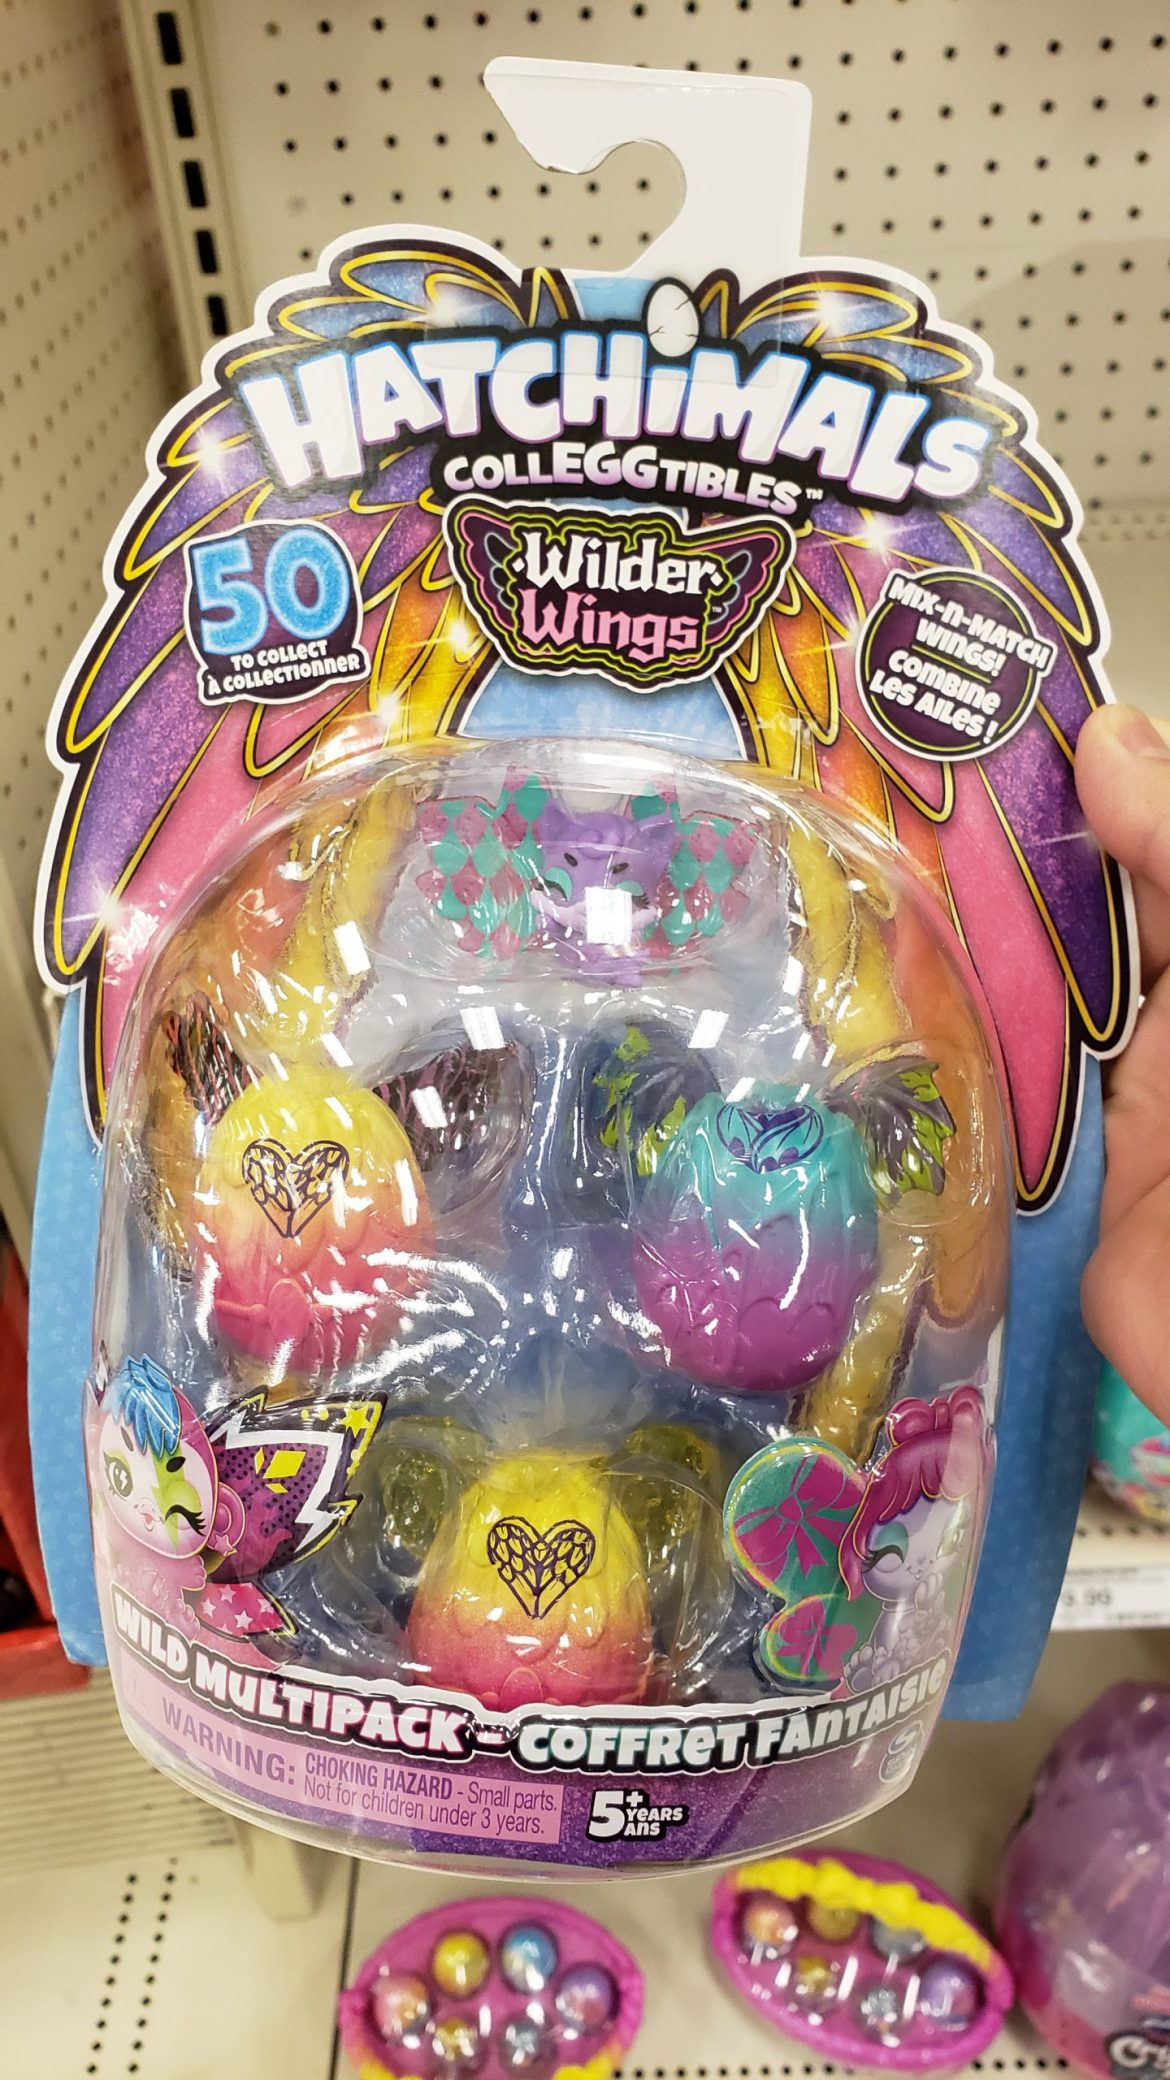 Hatchimals Colleggtibles Wilder Wings Now Available